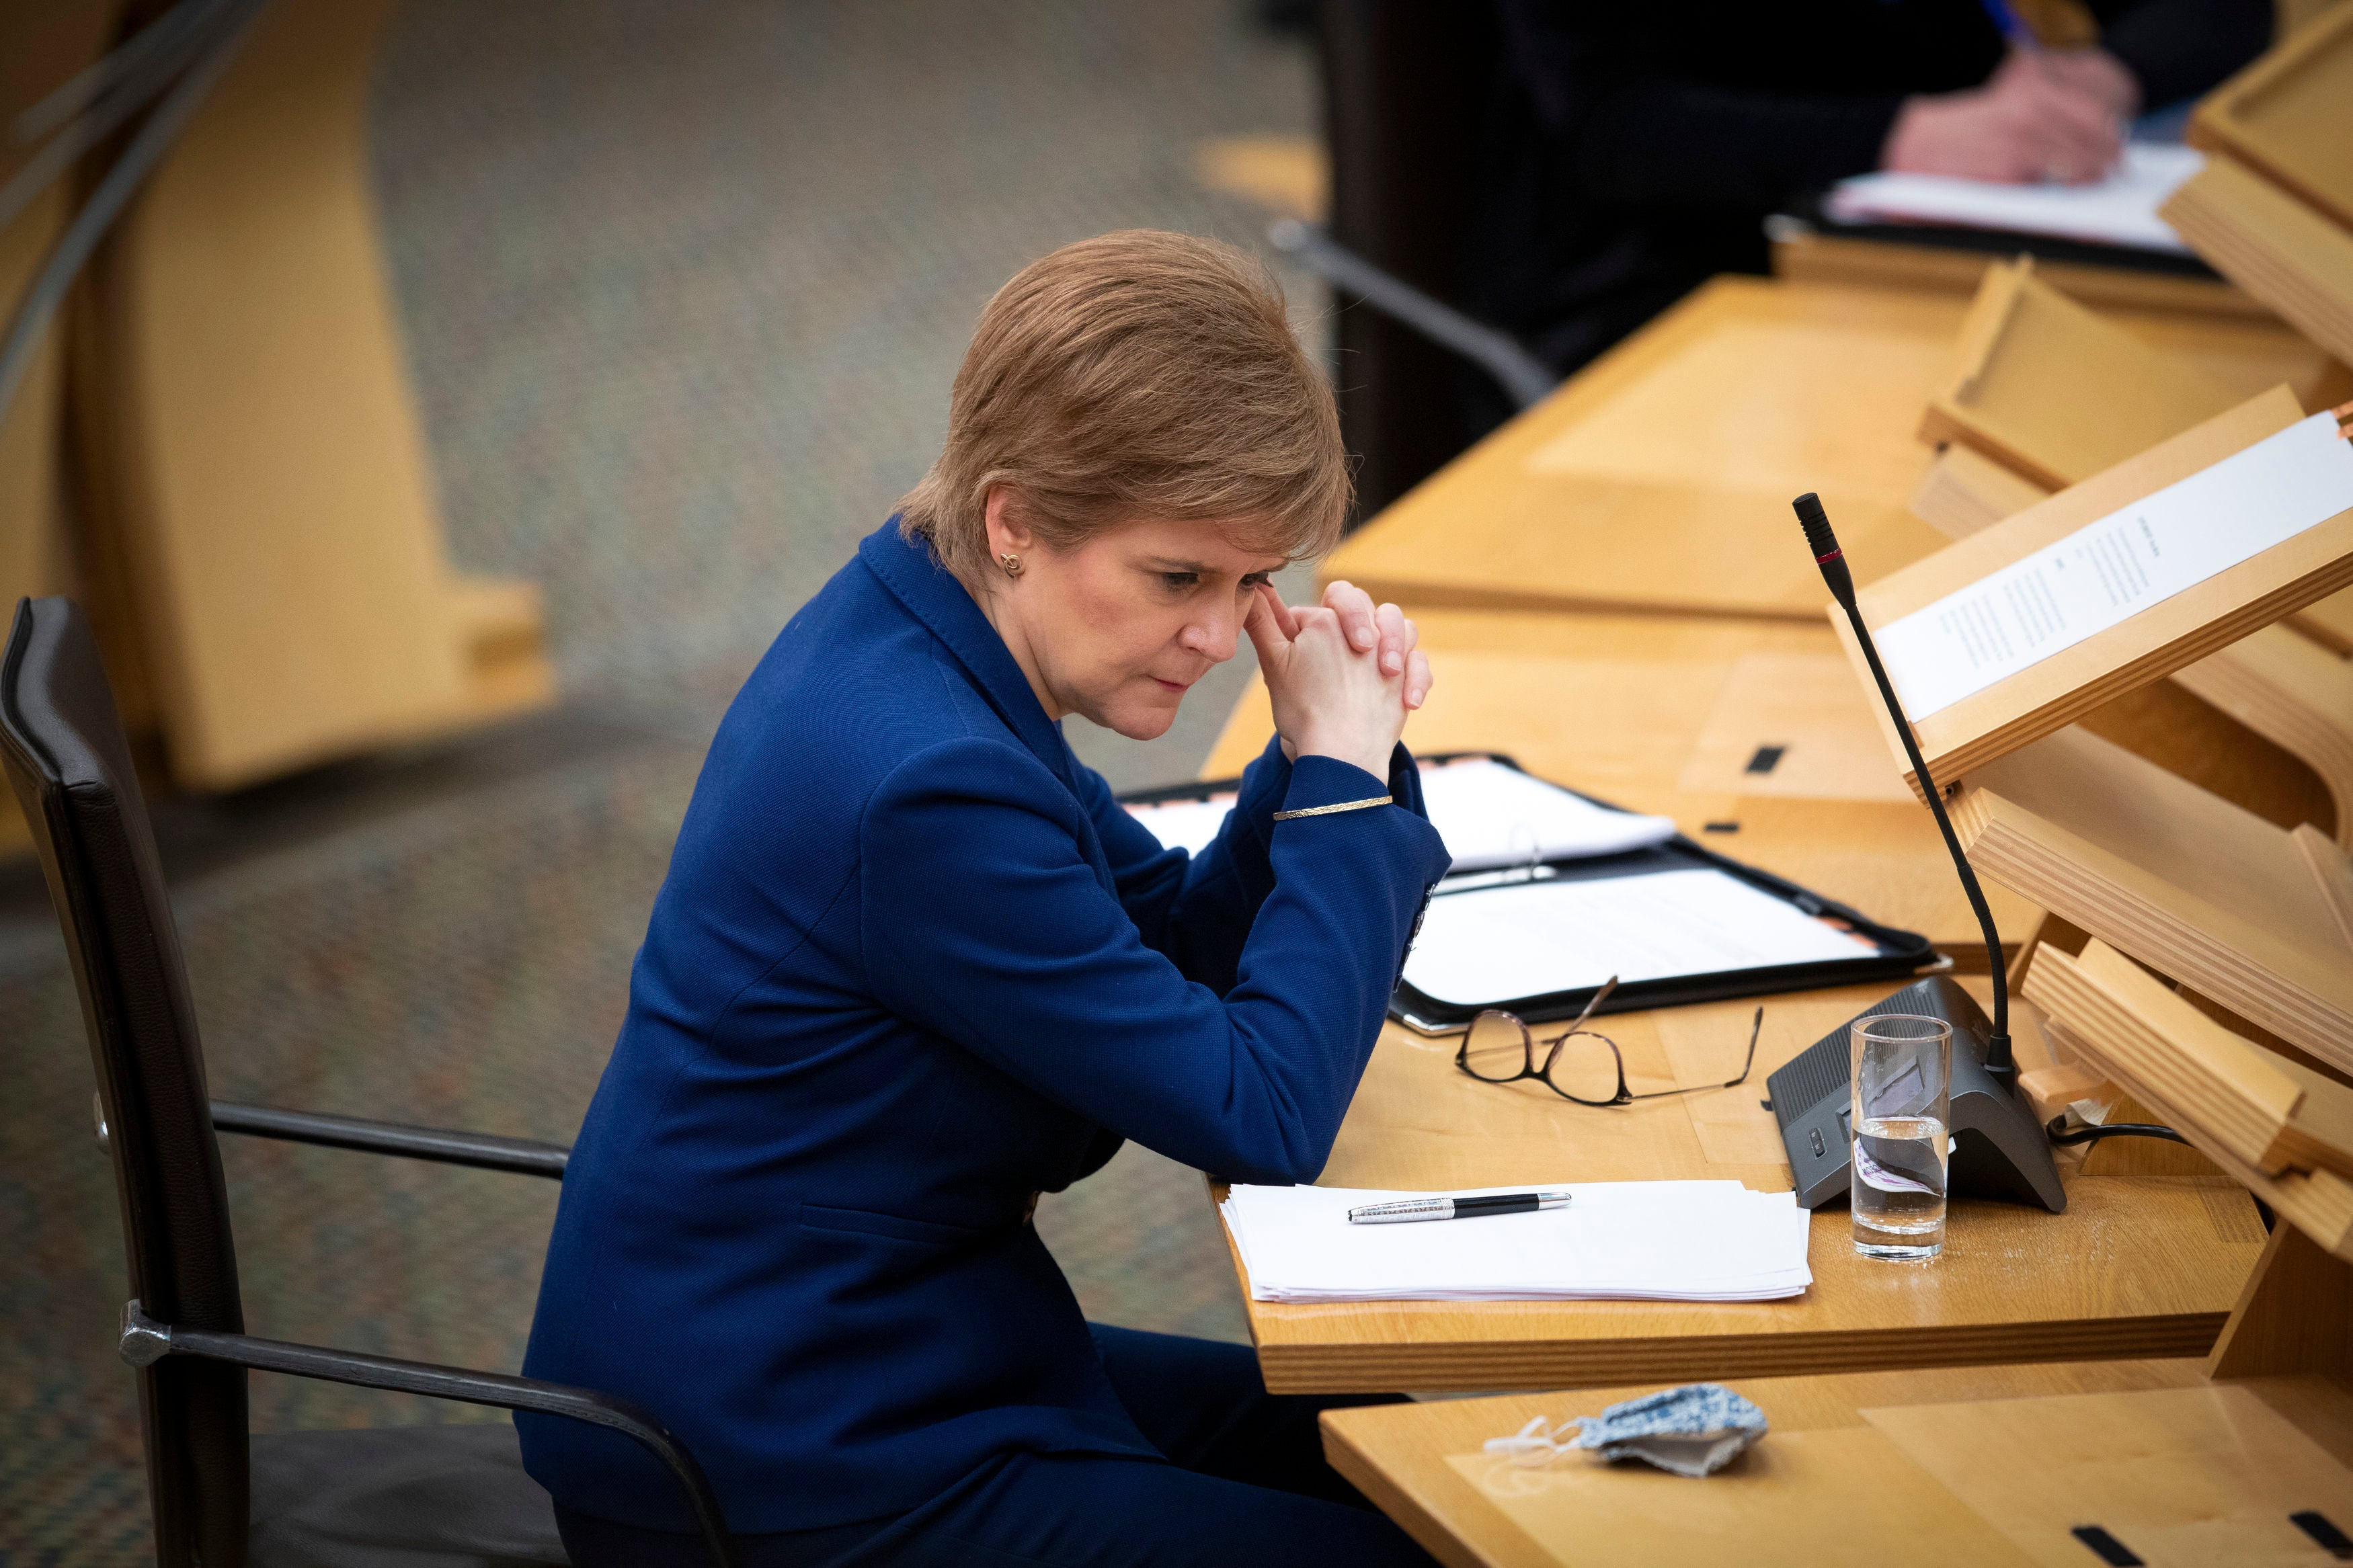 Nicola Sturgeon insists 'I did not mislead Parliament' as investigation into Alex Salmond affair stepped up